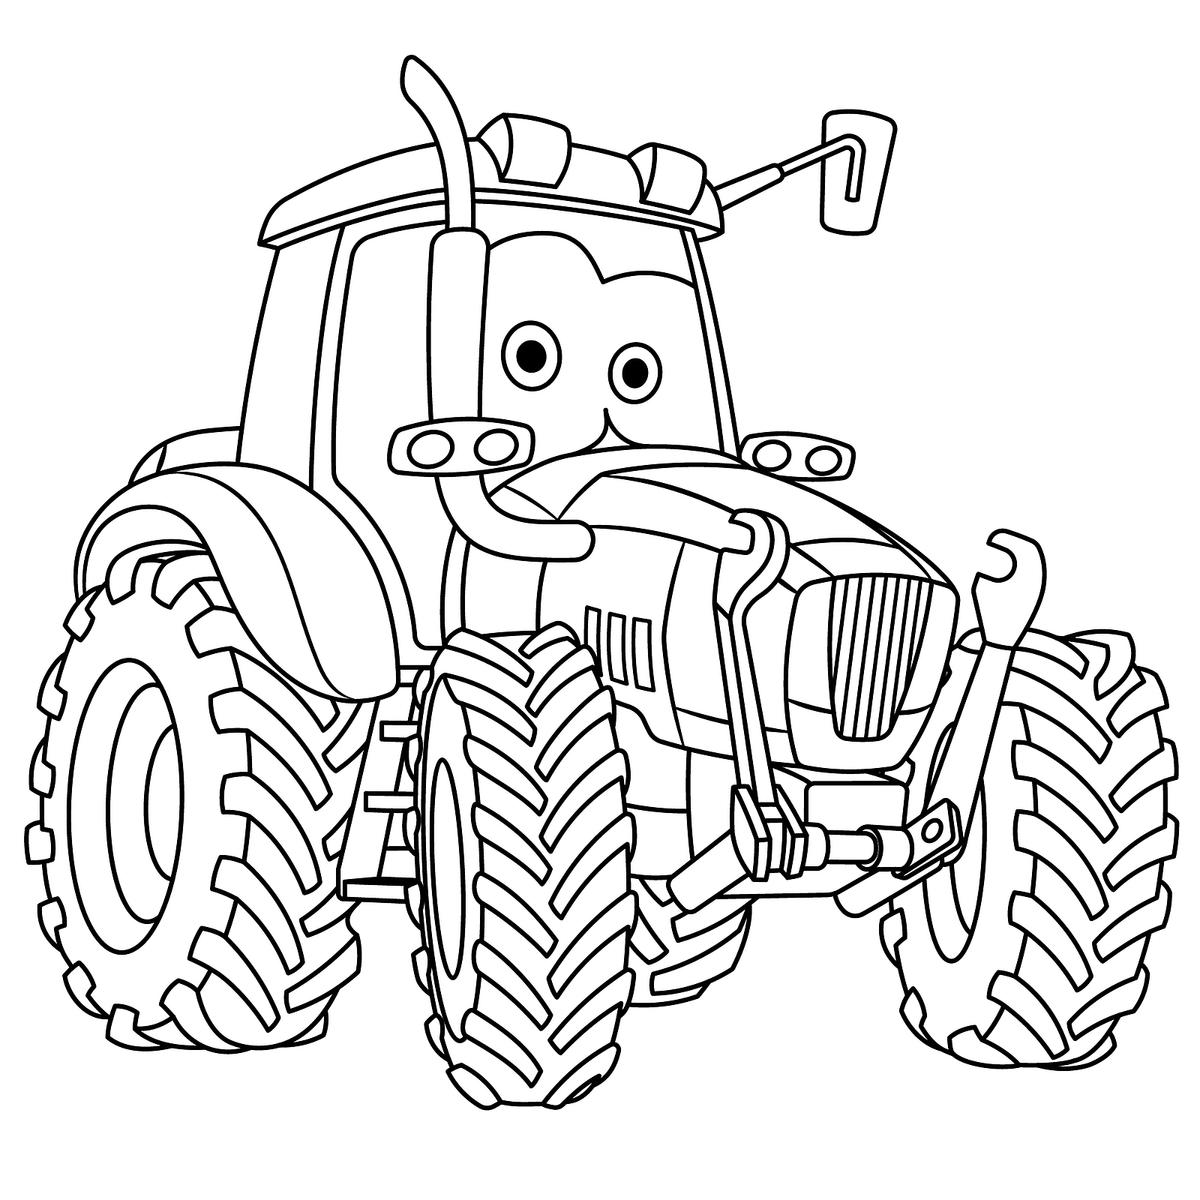 - Moving Vehicle Coloring Pages: 10 Fun Cars, Trucks, Trains (and